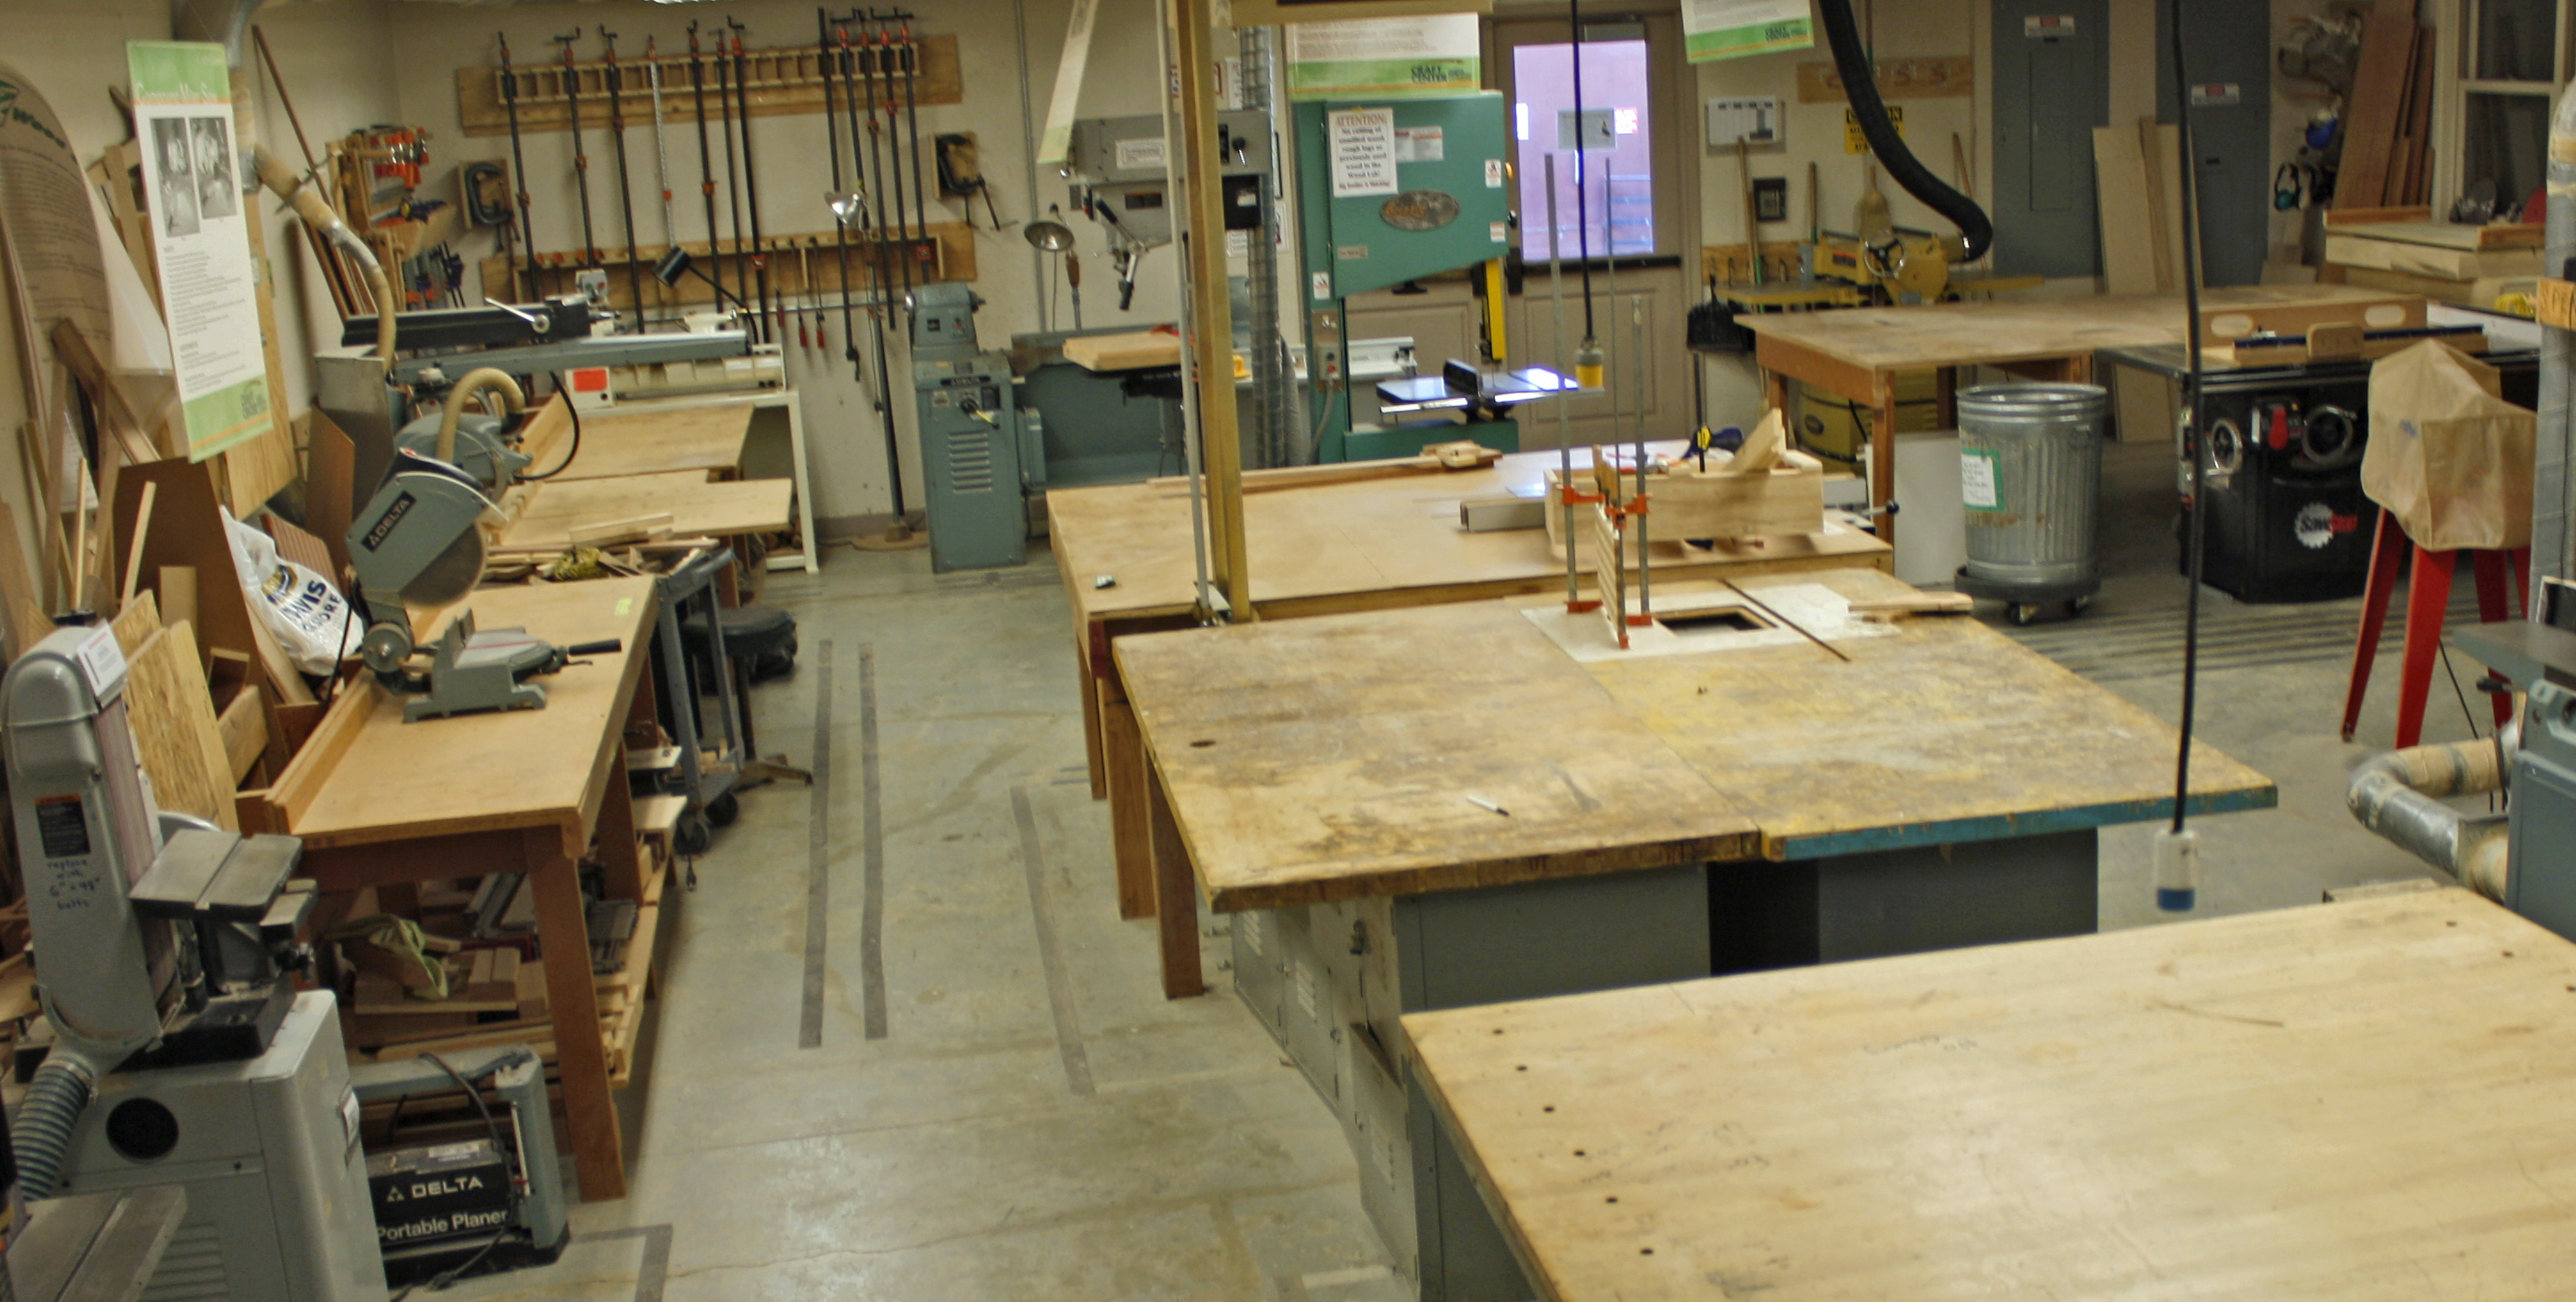 wood studio countertops and machinery in the craft center